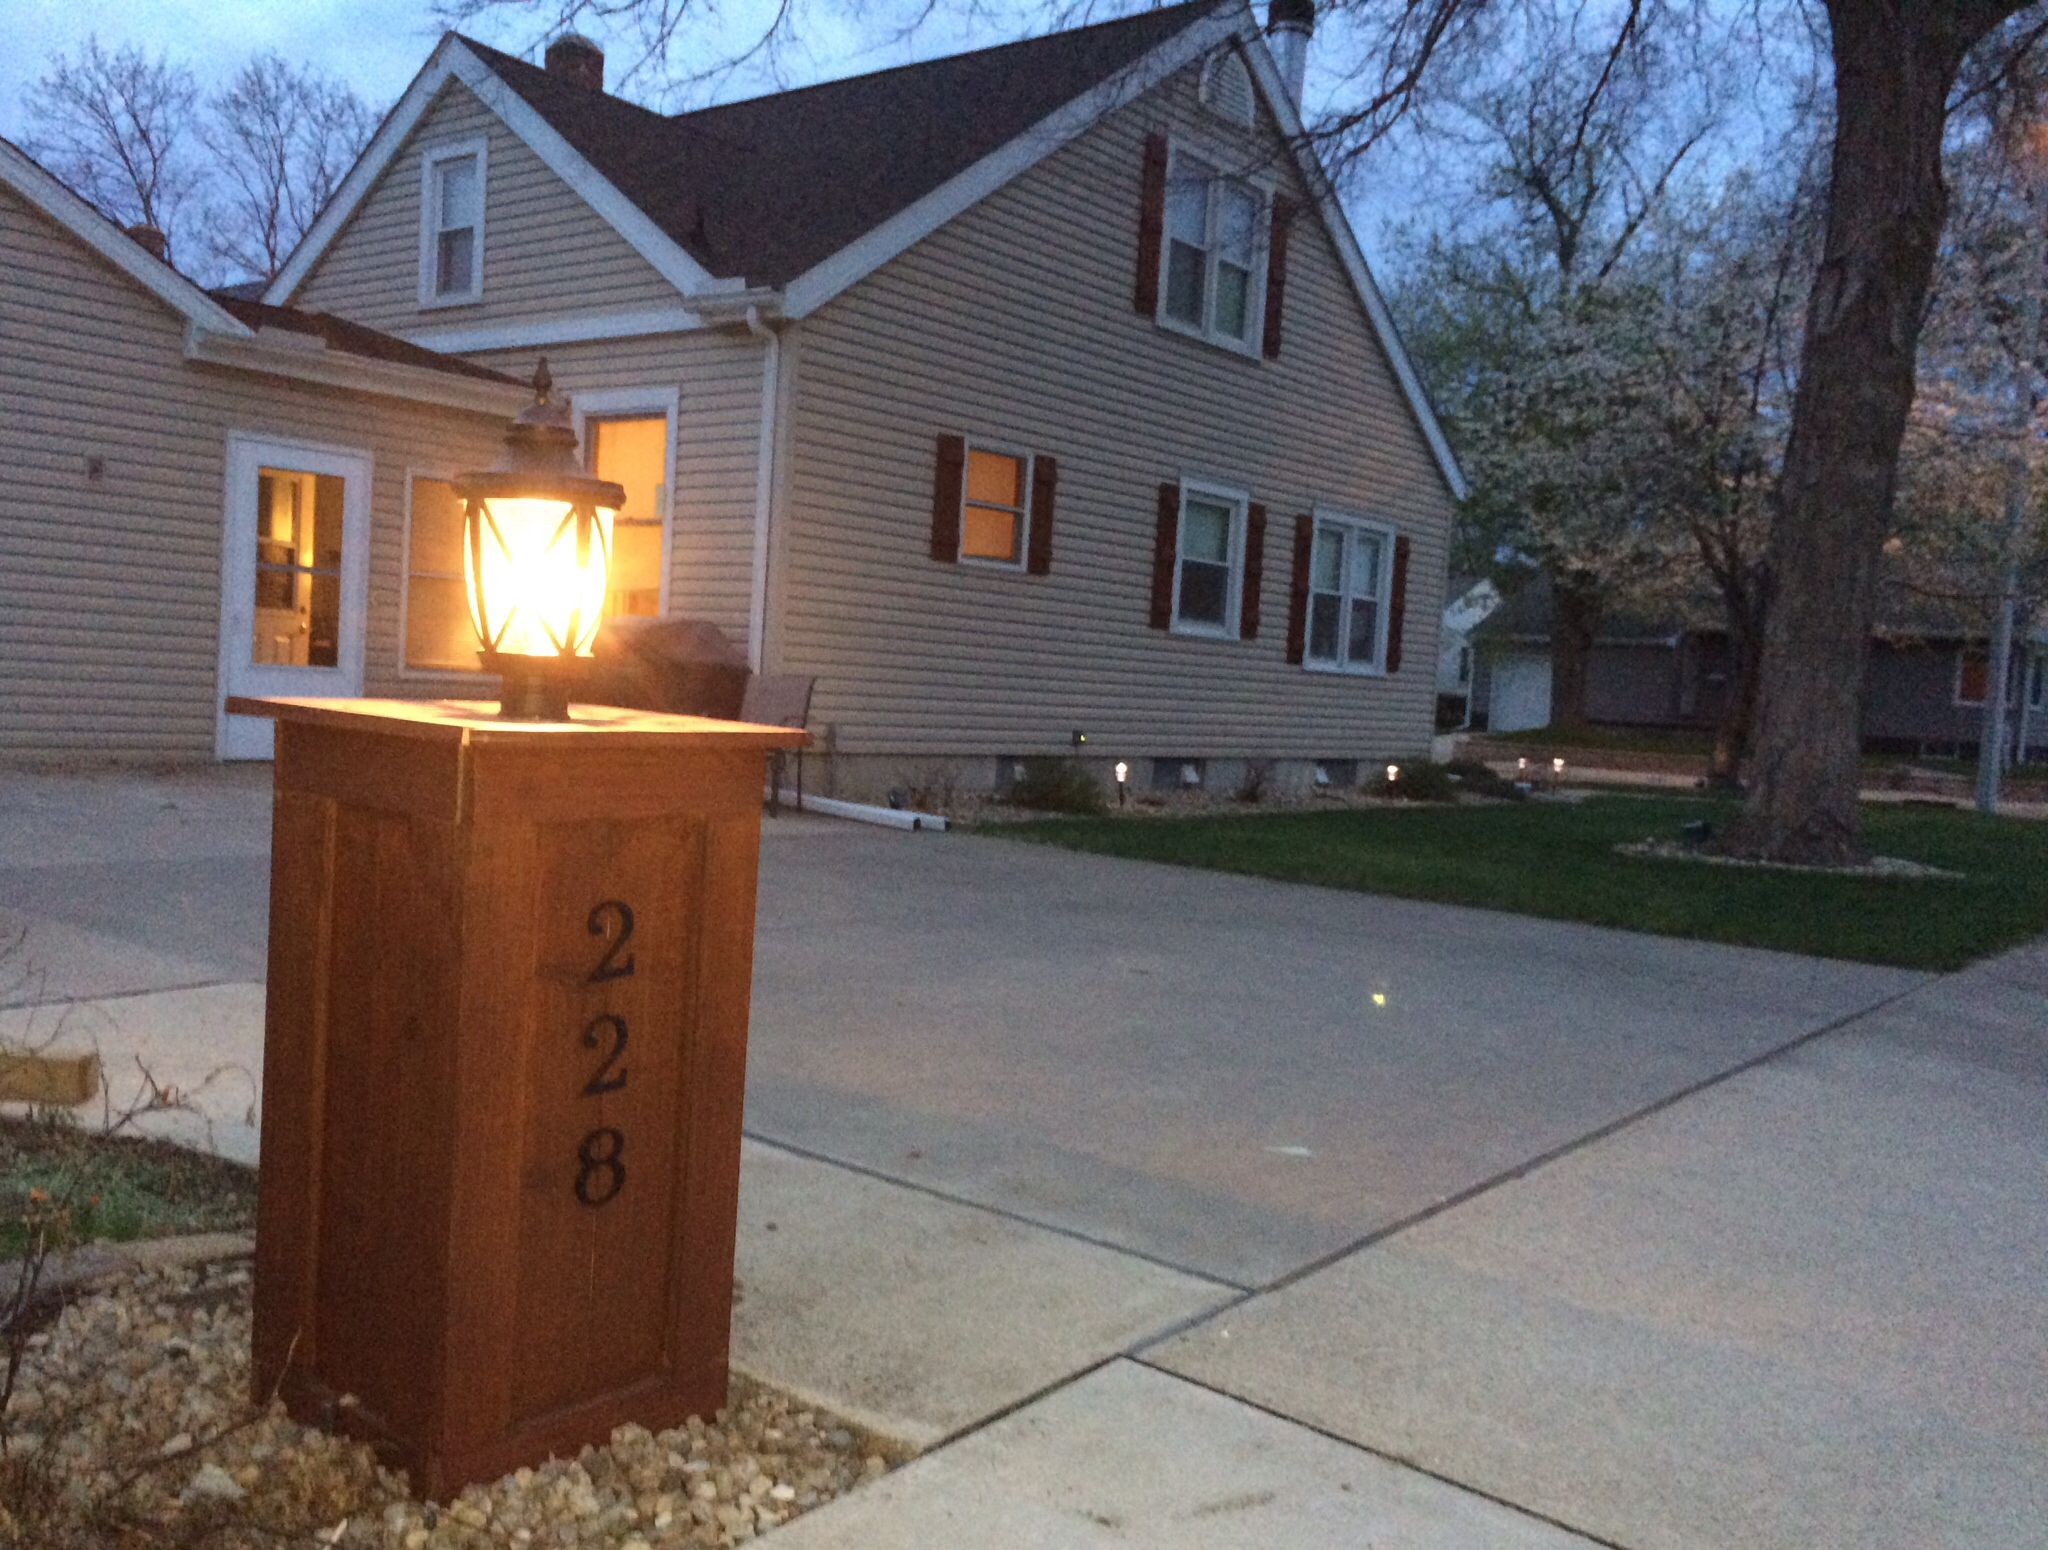 Craftsman Style Lamp Post Inspired By Bungalow Columns On 30 S Era Homes Constructed From Cedar With A Weather Proof Outlet And Photocell Added